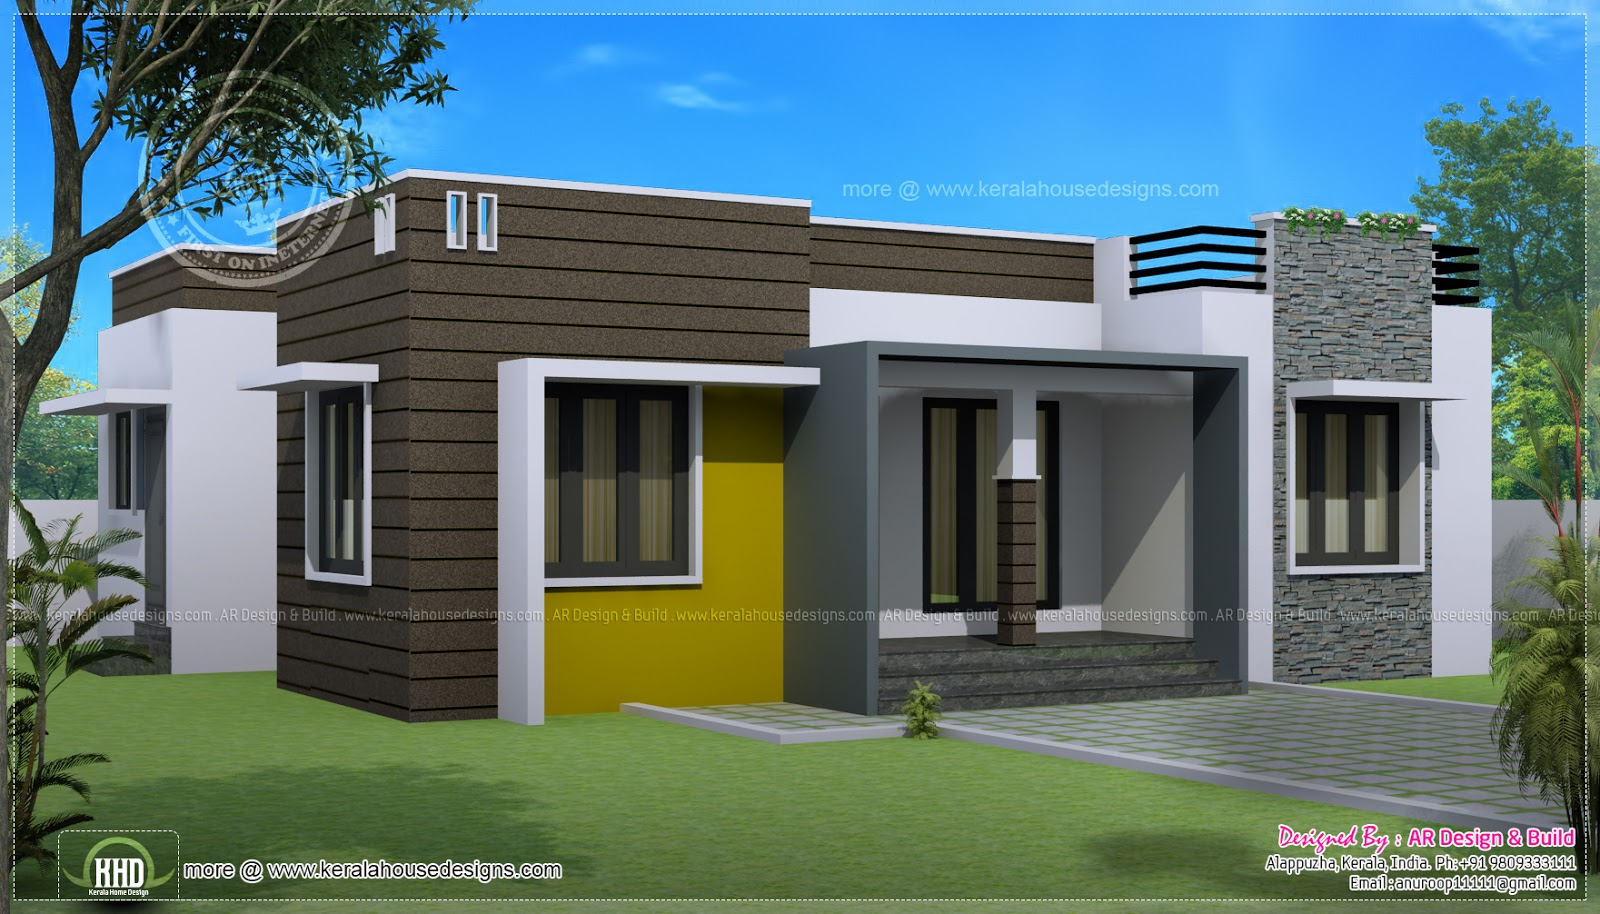 1000 sq-ft house with provision for stair and future expansion